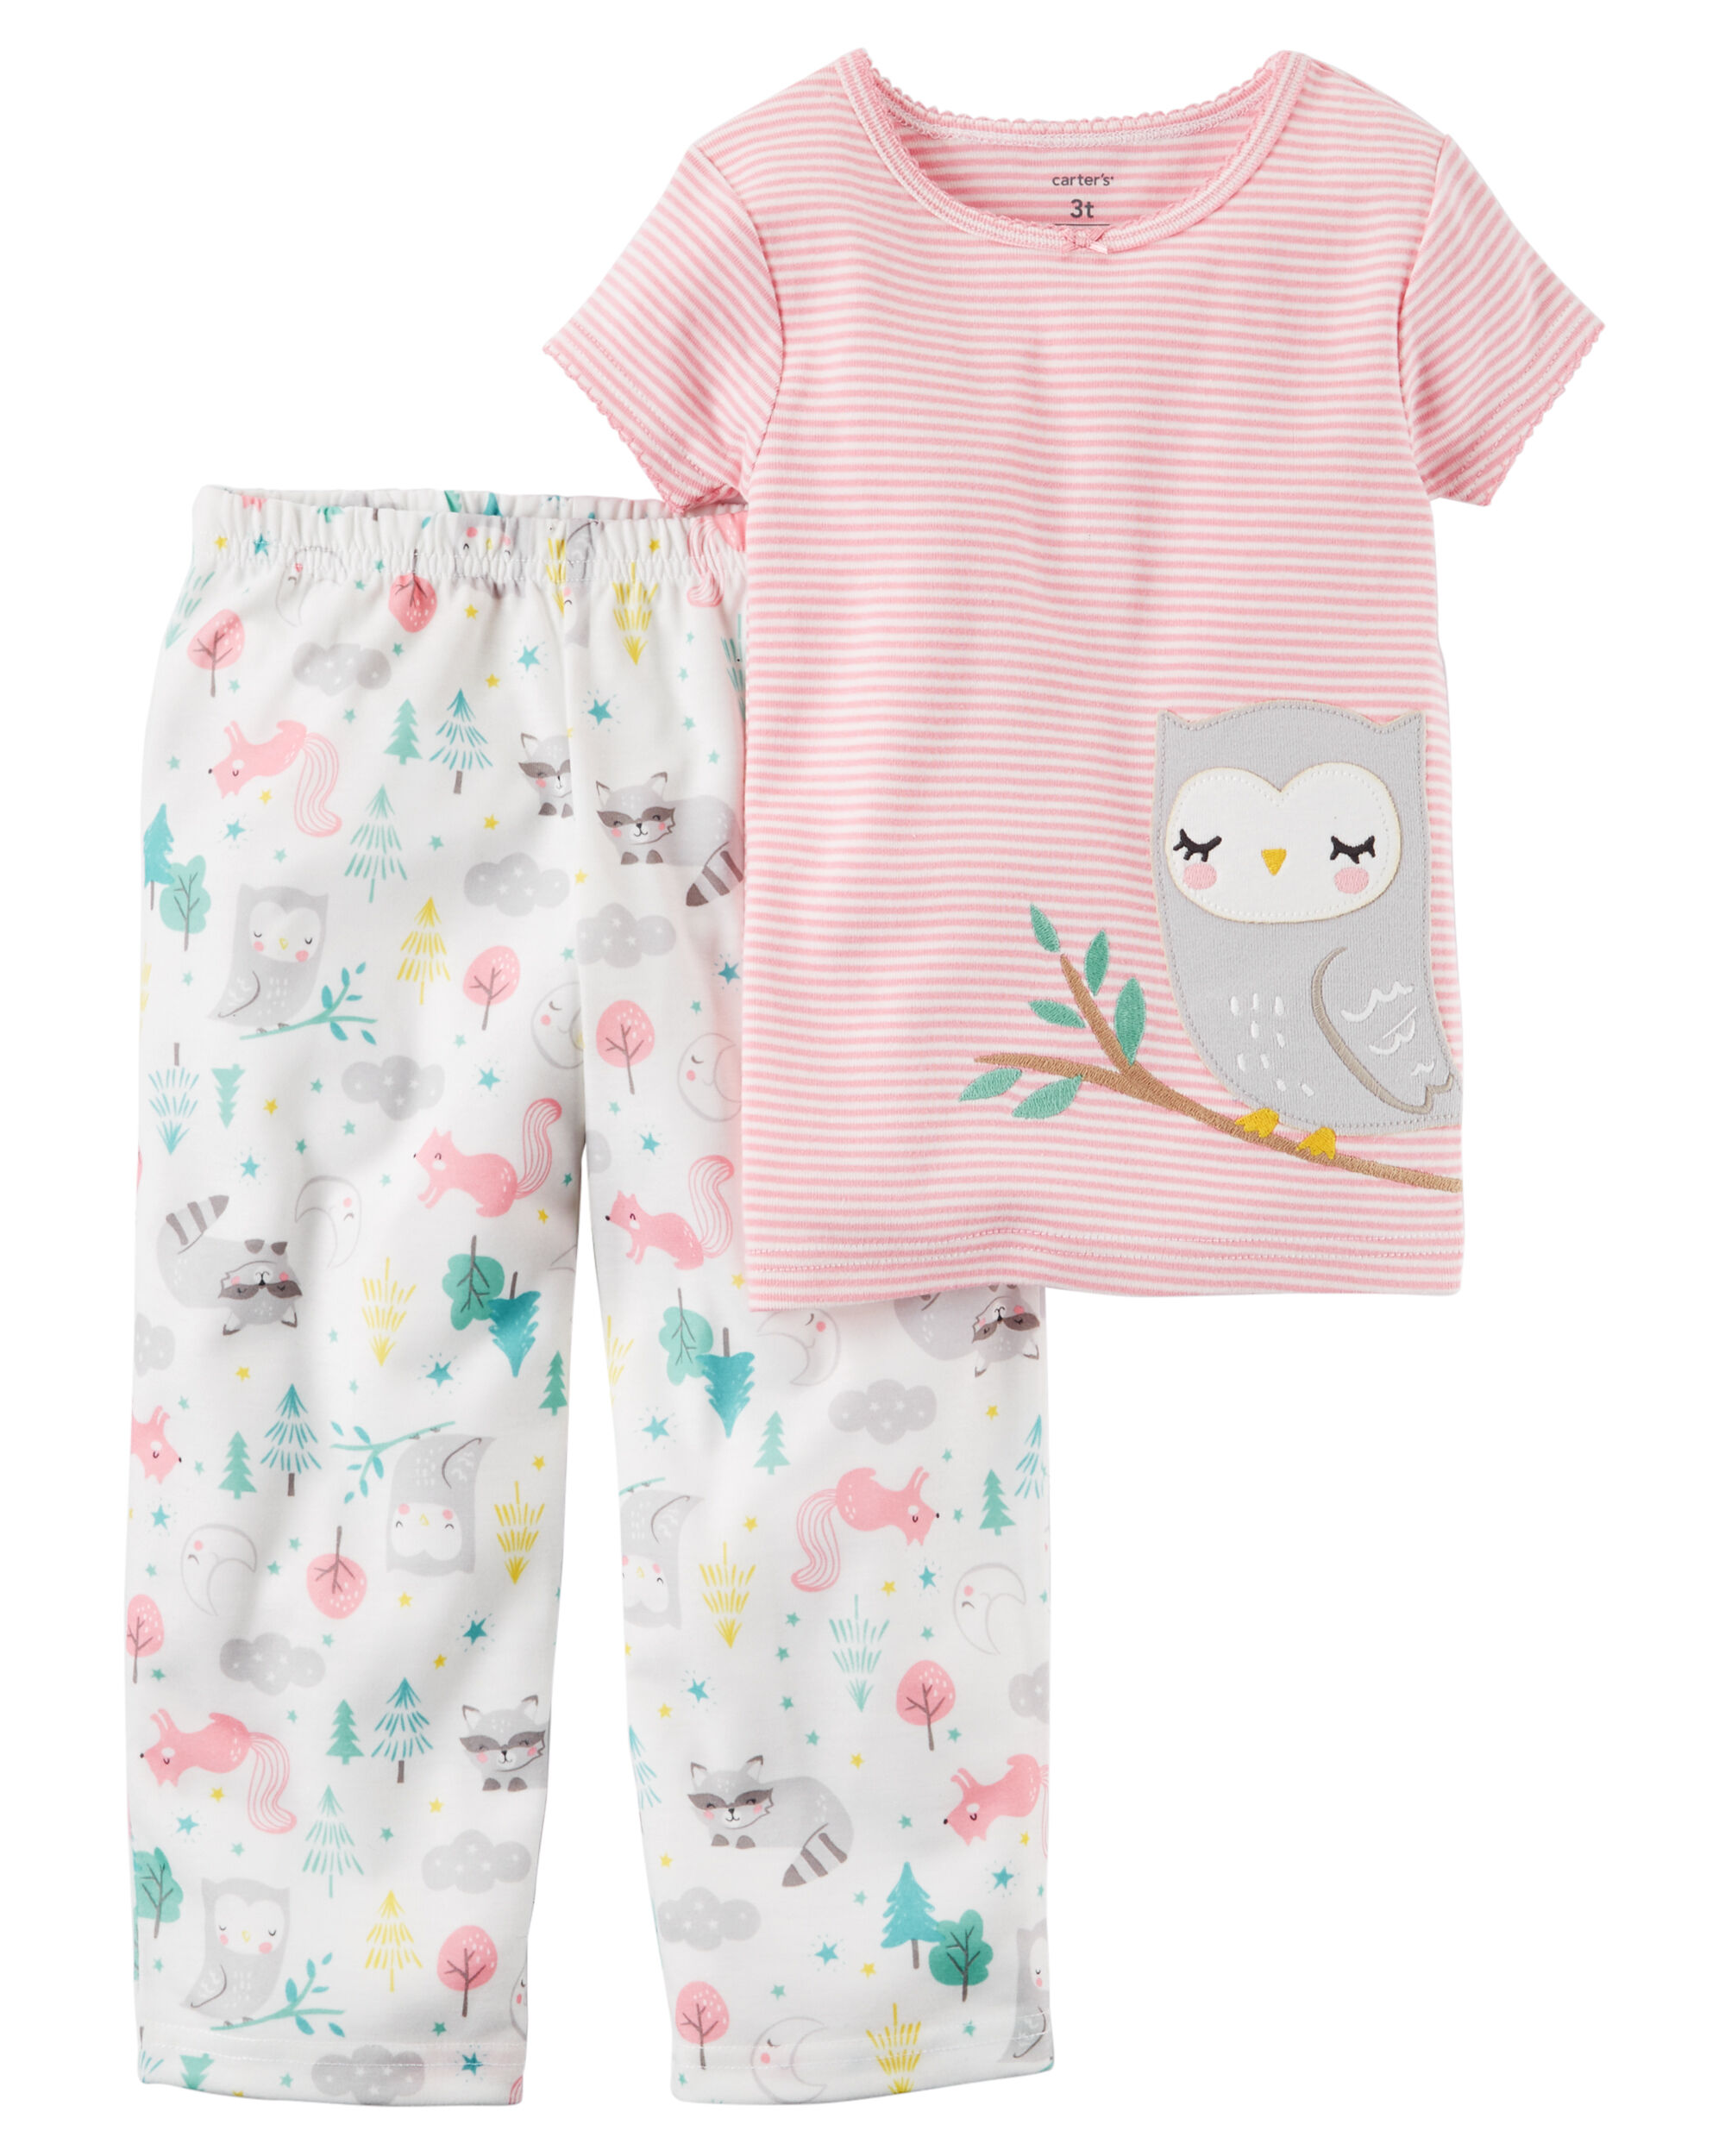 baby boys' sleepsuits & pyjamas Browse our range of sleepsuits and pyjamas to help your little one quickly reach the land of nod. Thanks to the warm, comfortable material these little clothes sets are ideal for helping your little boy have a great sleep.